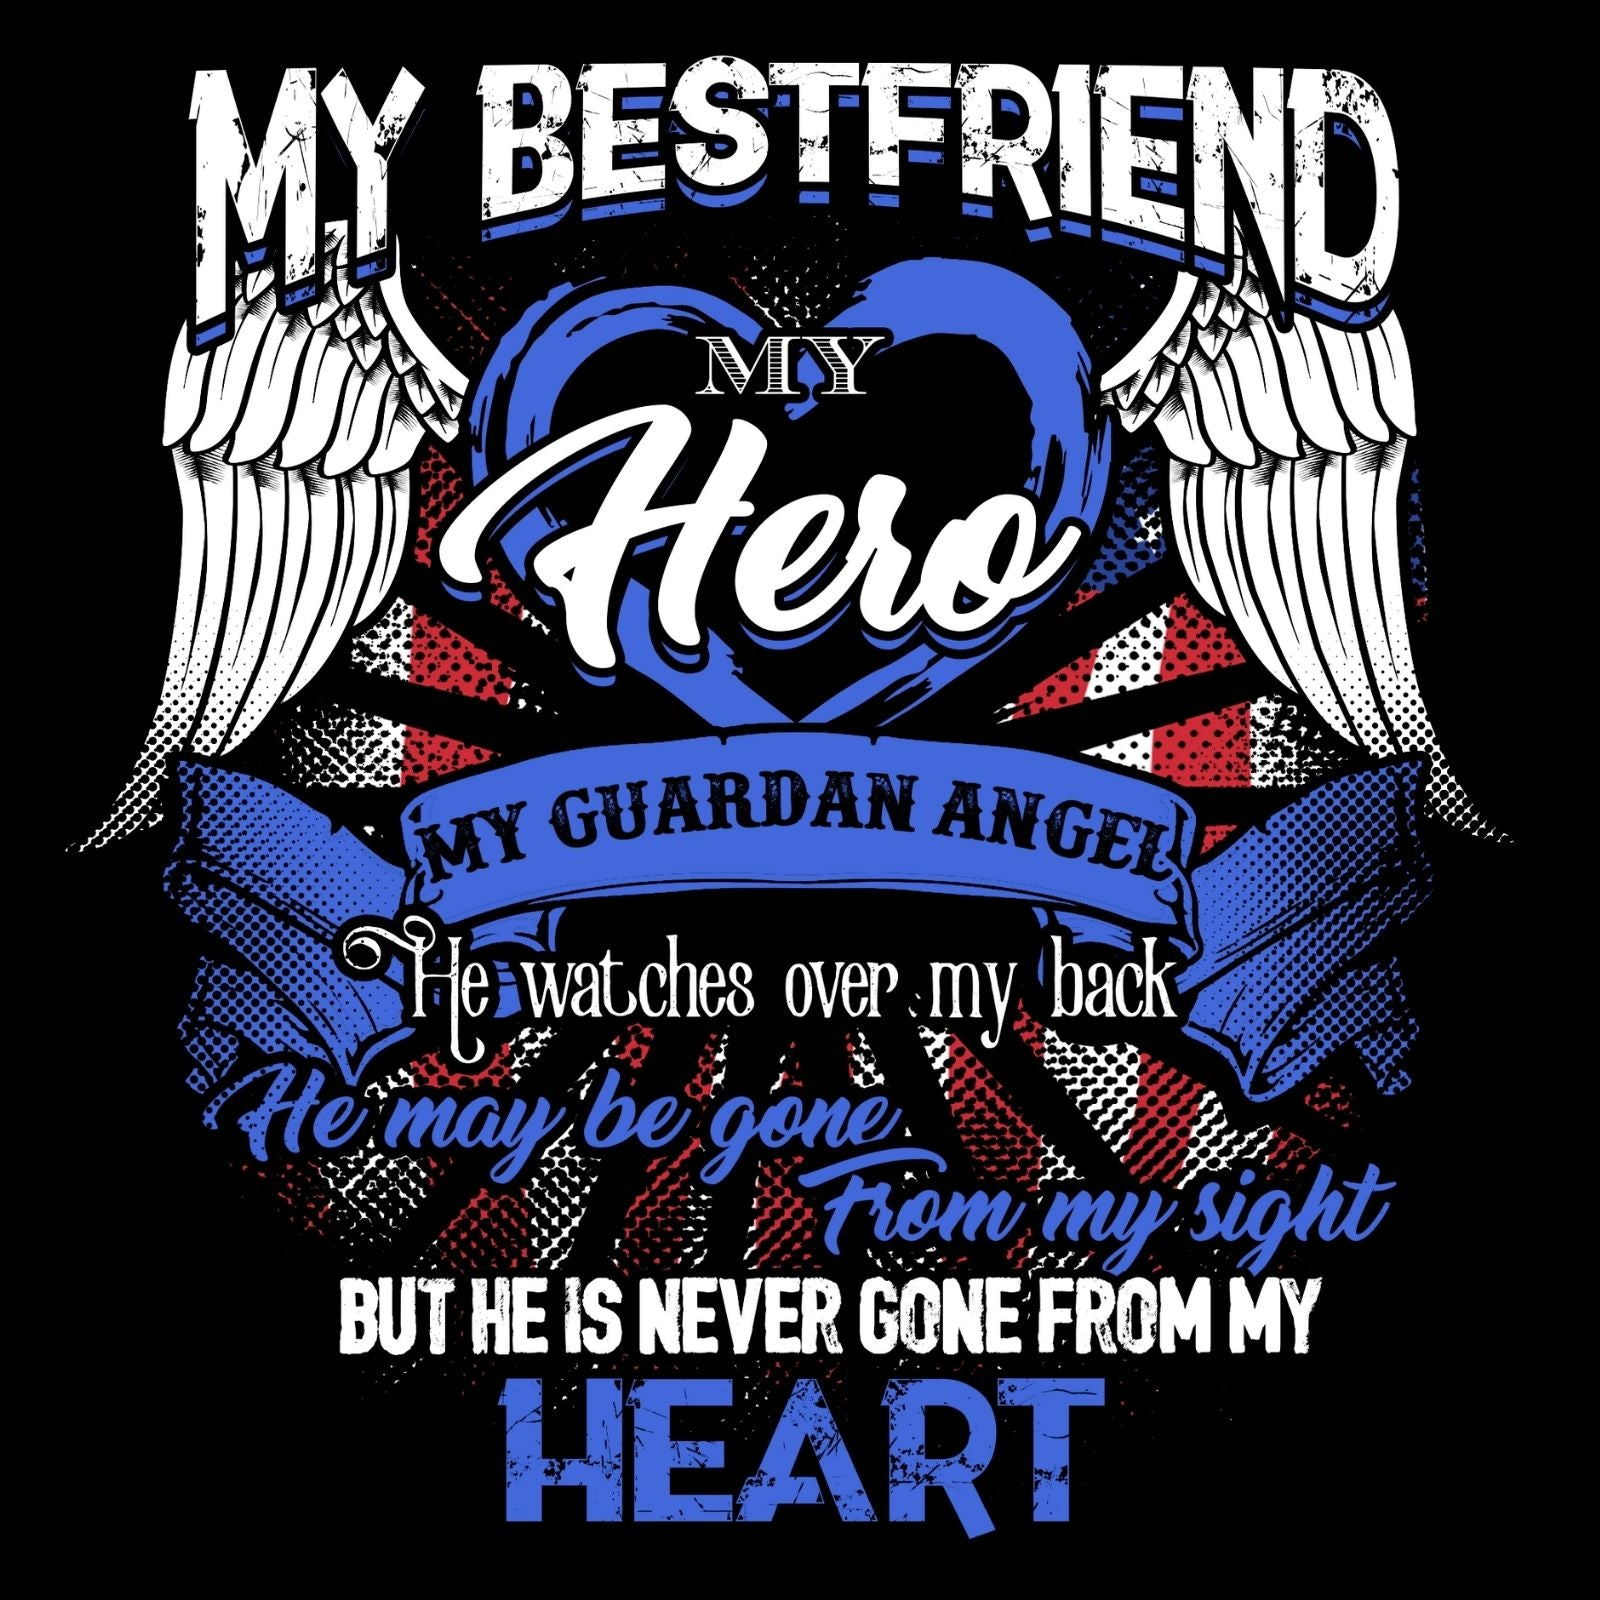 My Bestfriend My Hero My Guardian Angel He Watches Over MY Back He Maybe Gone From My Sight But He Is Never Gone From My Heart (Male) - Bastard Graphics